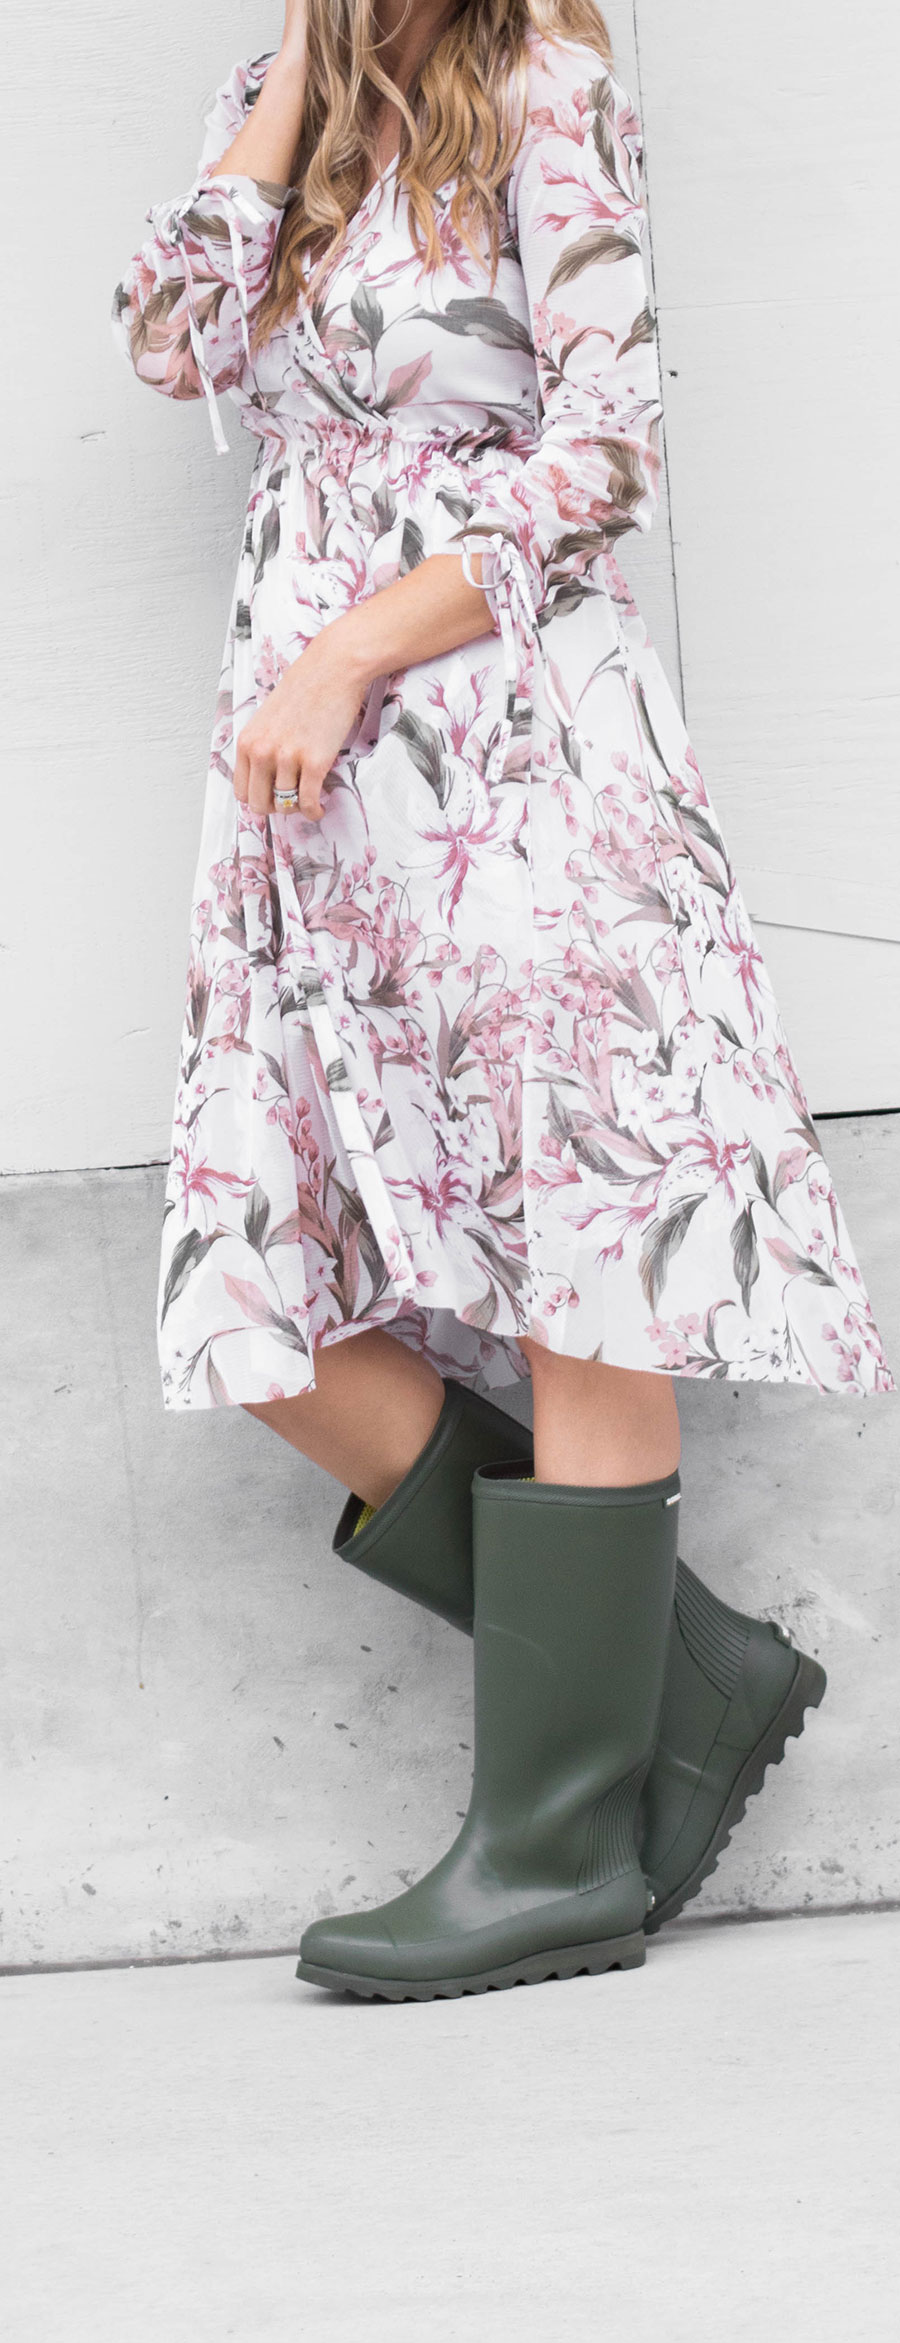 81059391debfa Rain Boots With A Floral Dress- Life By Lee